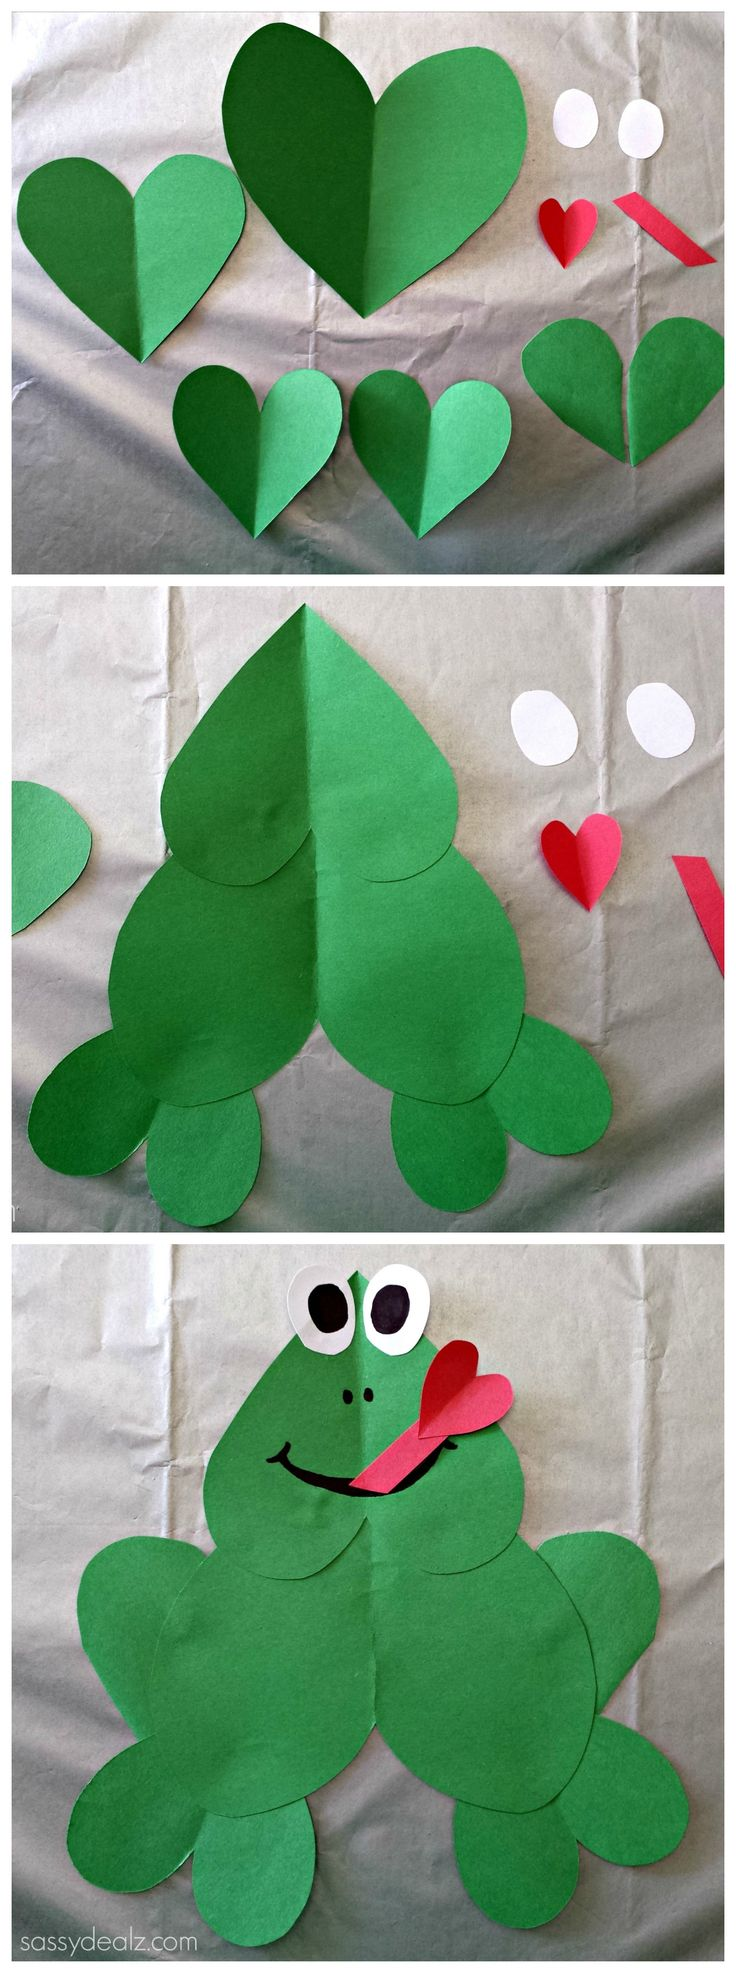 Cute Paper Heart Frog Craft For Kids! #Valentines day art project #Froggy #DIY #Hearts | http://www.sassydealz.com/2014/02/paper-heart-frog-craft-kids.html